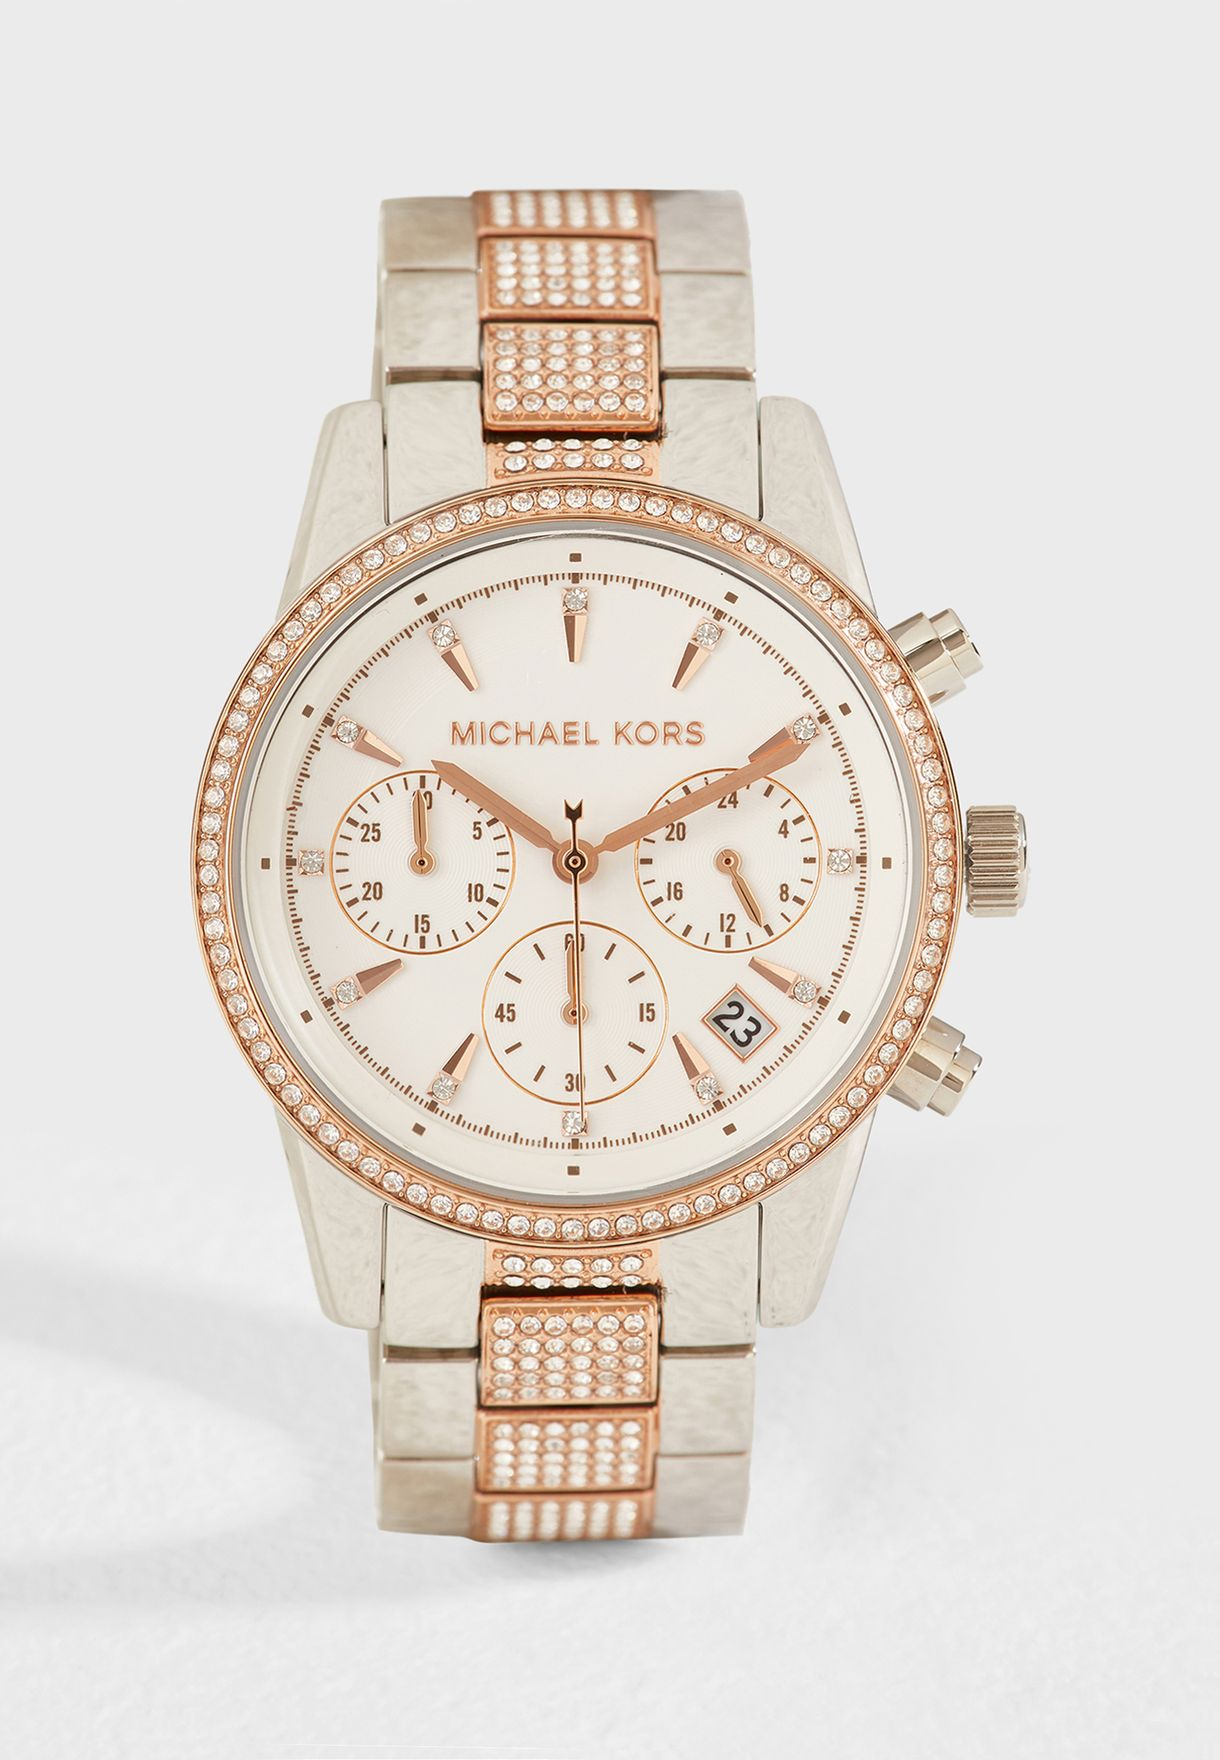 MK6651 Ritz Dress Watch